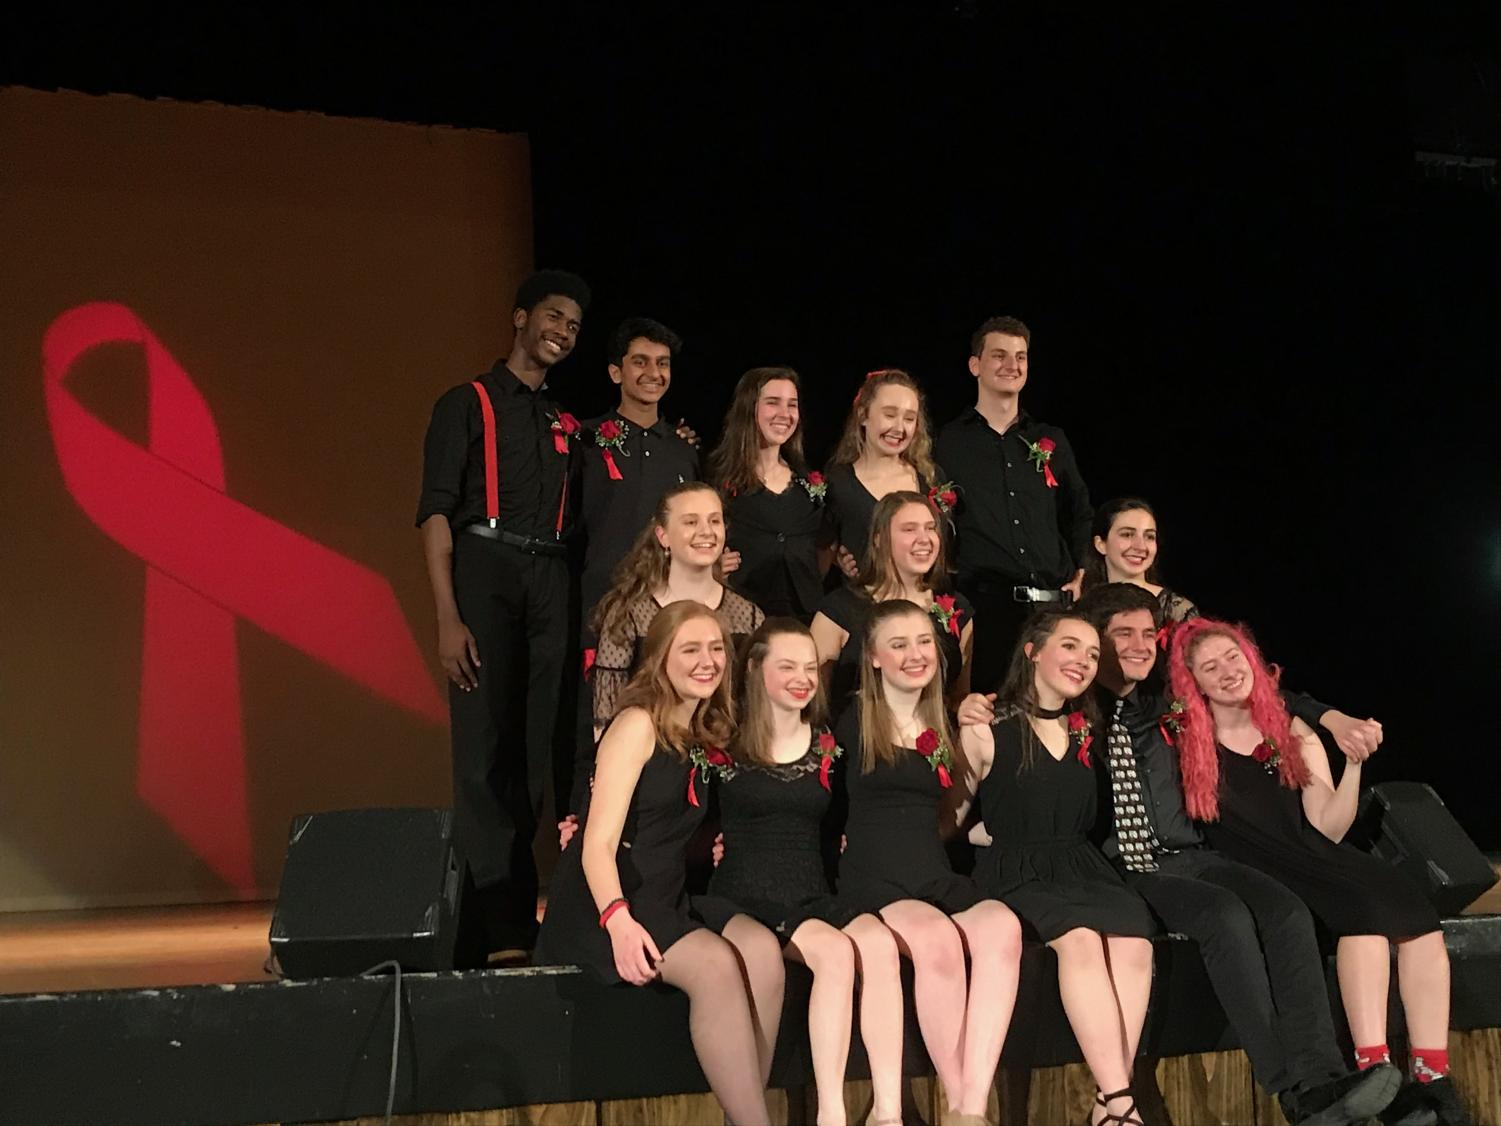 North Penn's Thespian Troupe #5464 hosted the 19th annual BC/EFA gala and fundraiser.